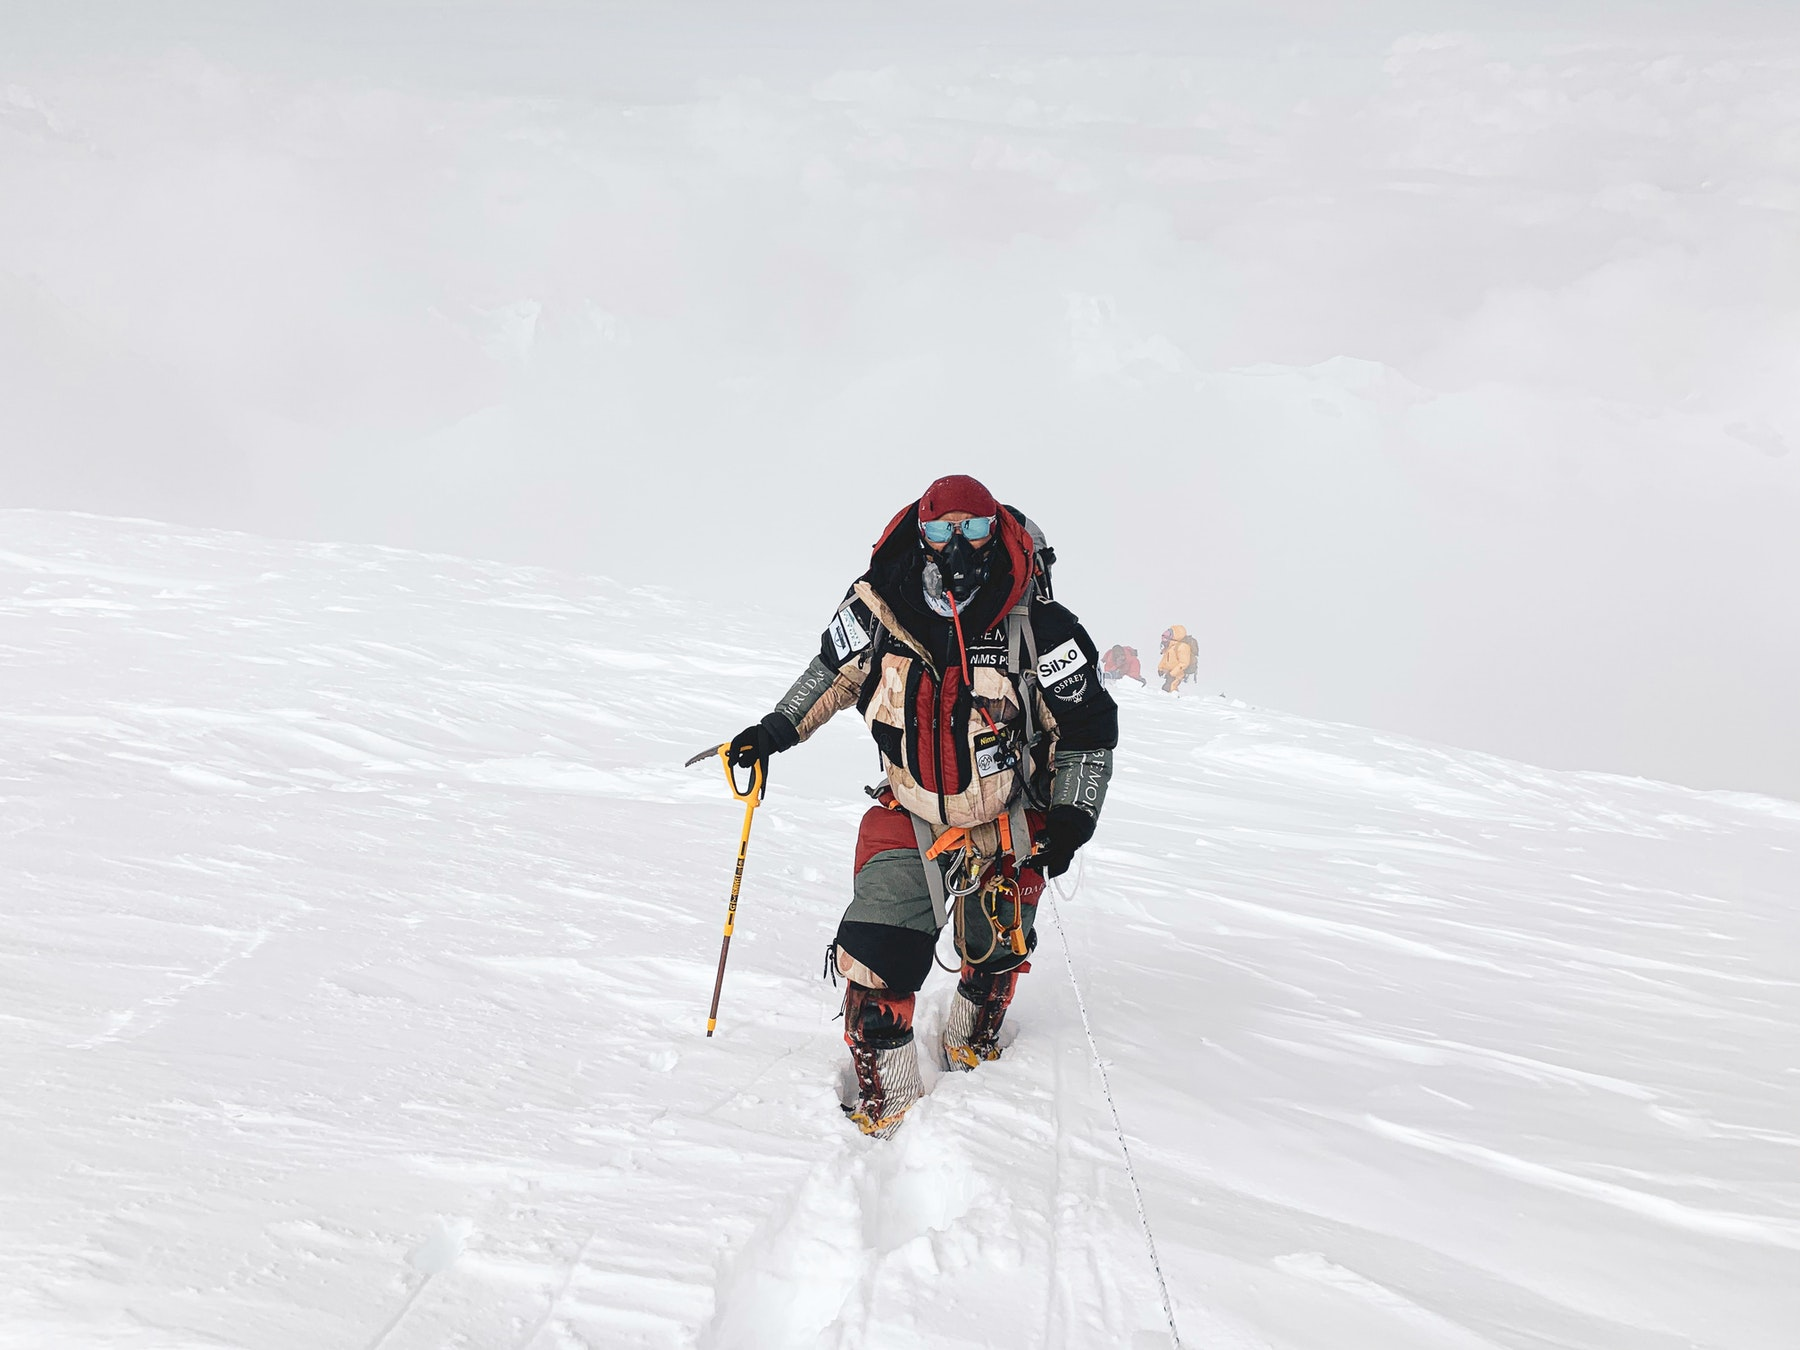 Nims on the way to the summit of Cho Oyu